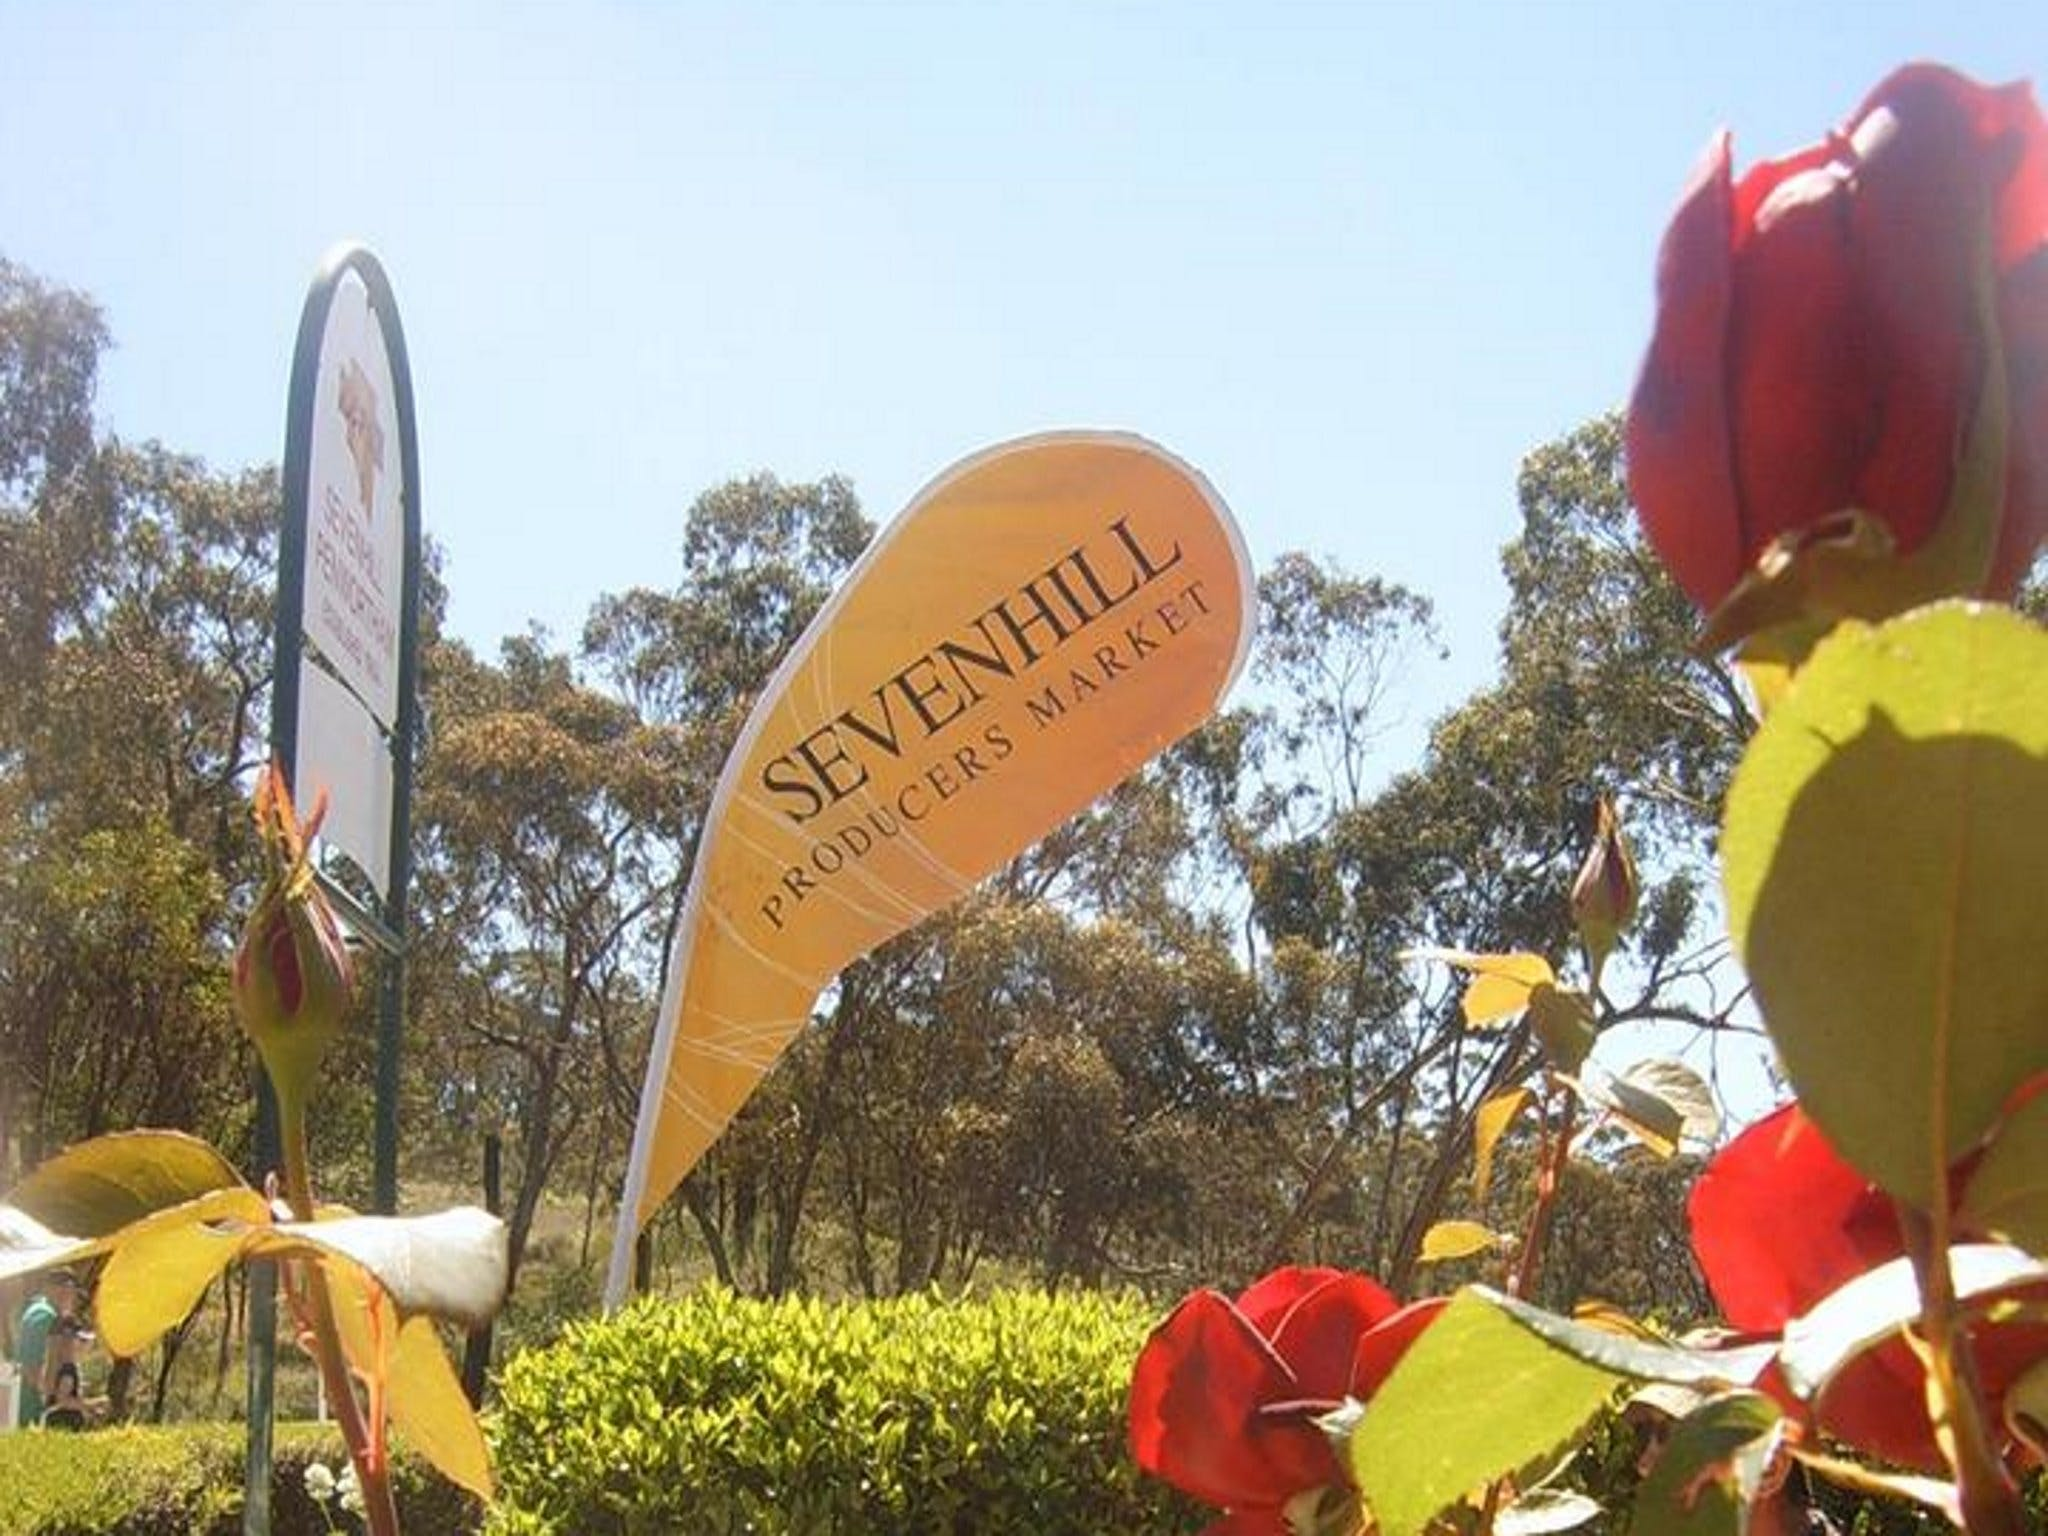 Sevenhill Producers Market - Accommodation Adelaide